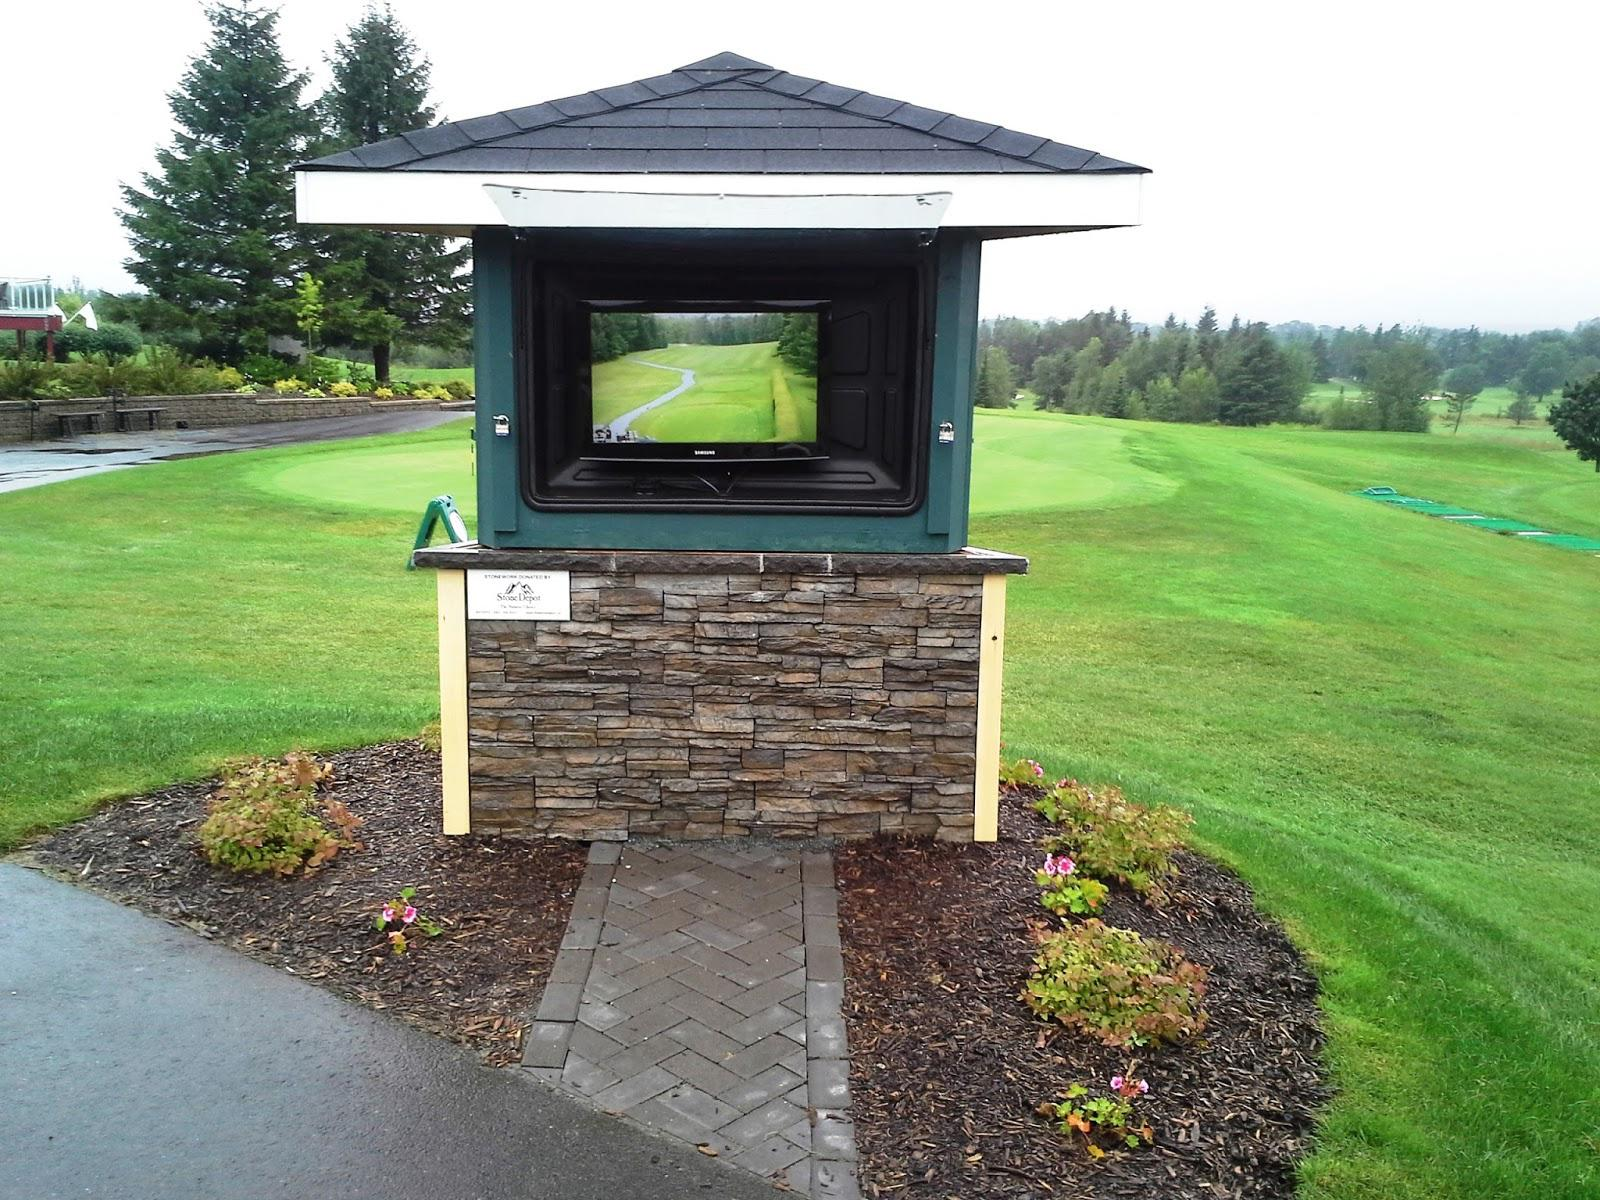 Why Weatherproof Tv Solutions Score Birdies For Golf Club